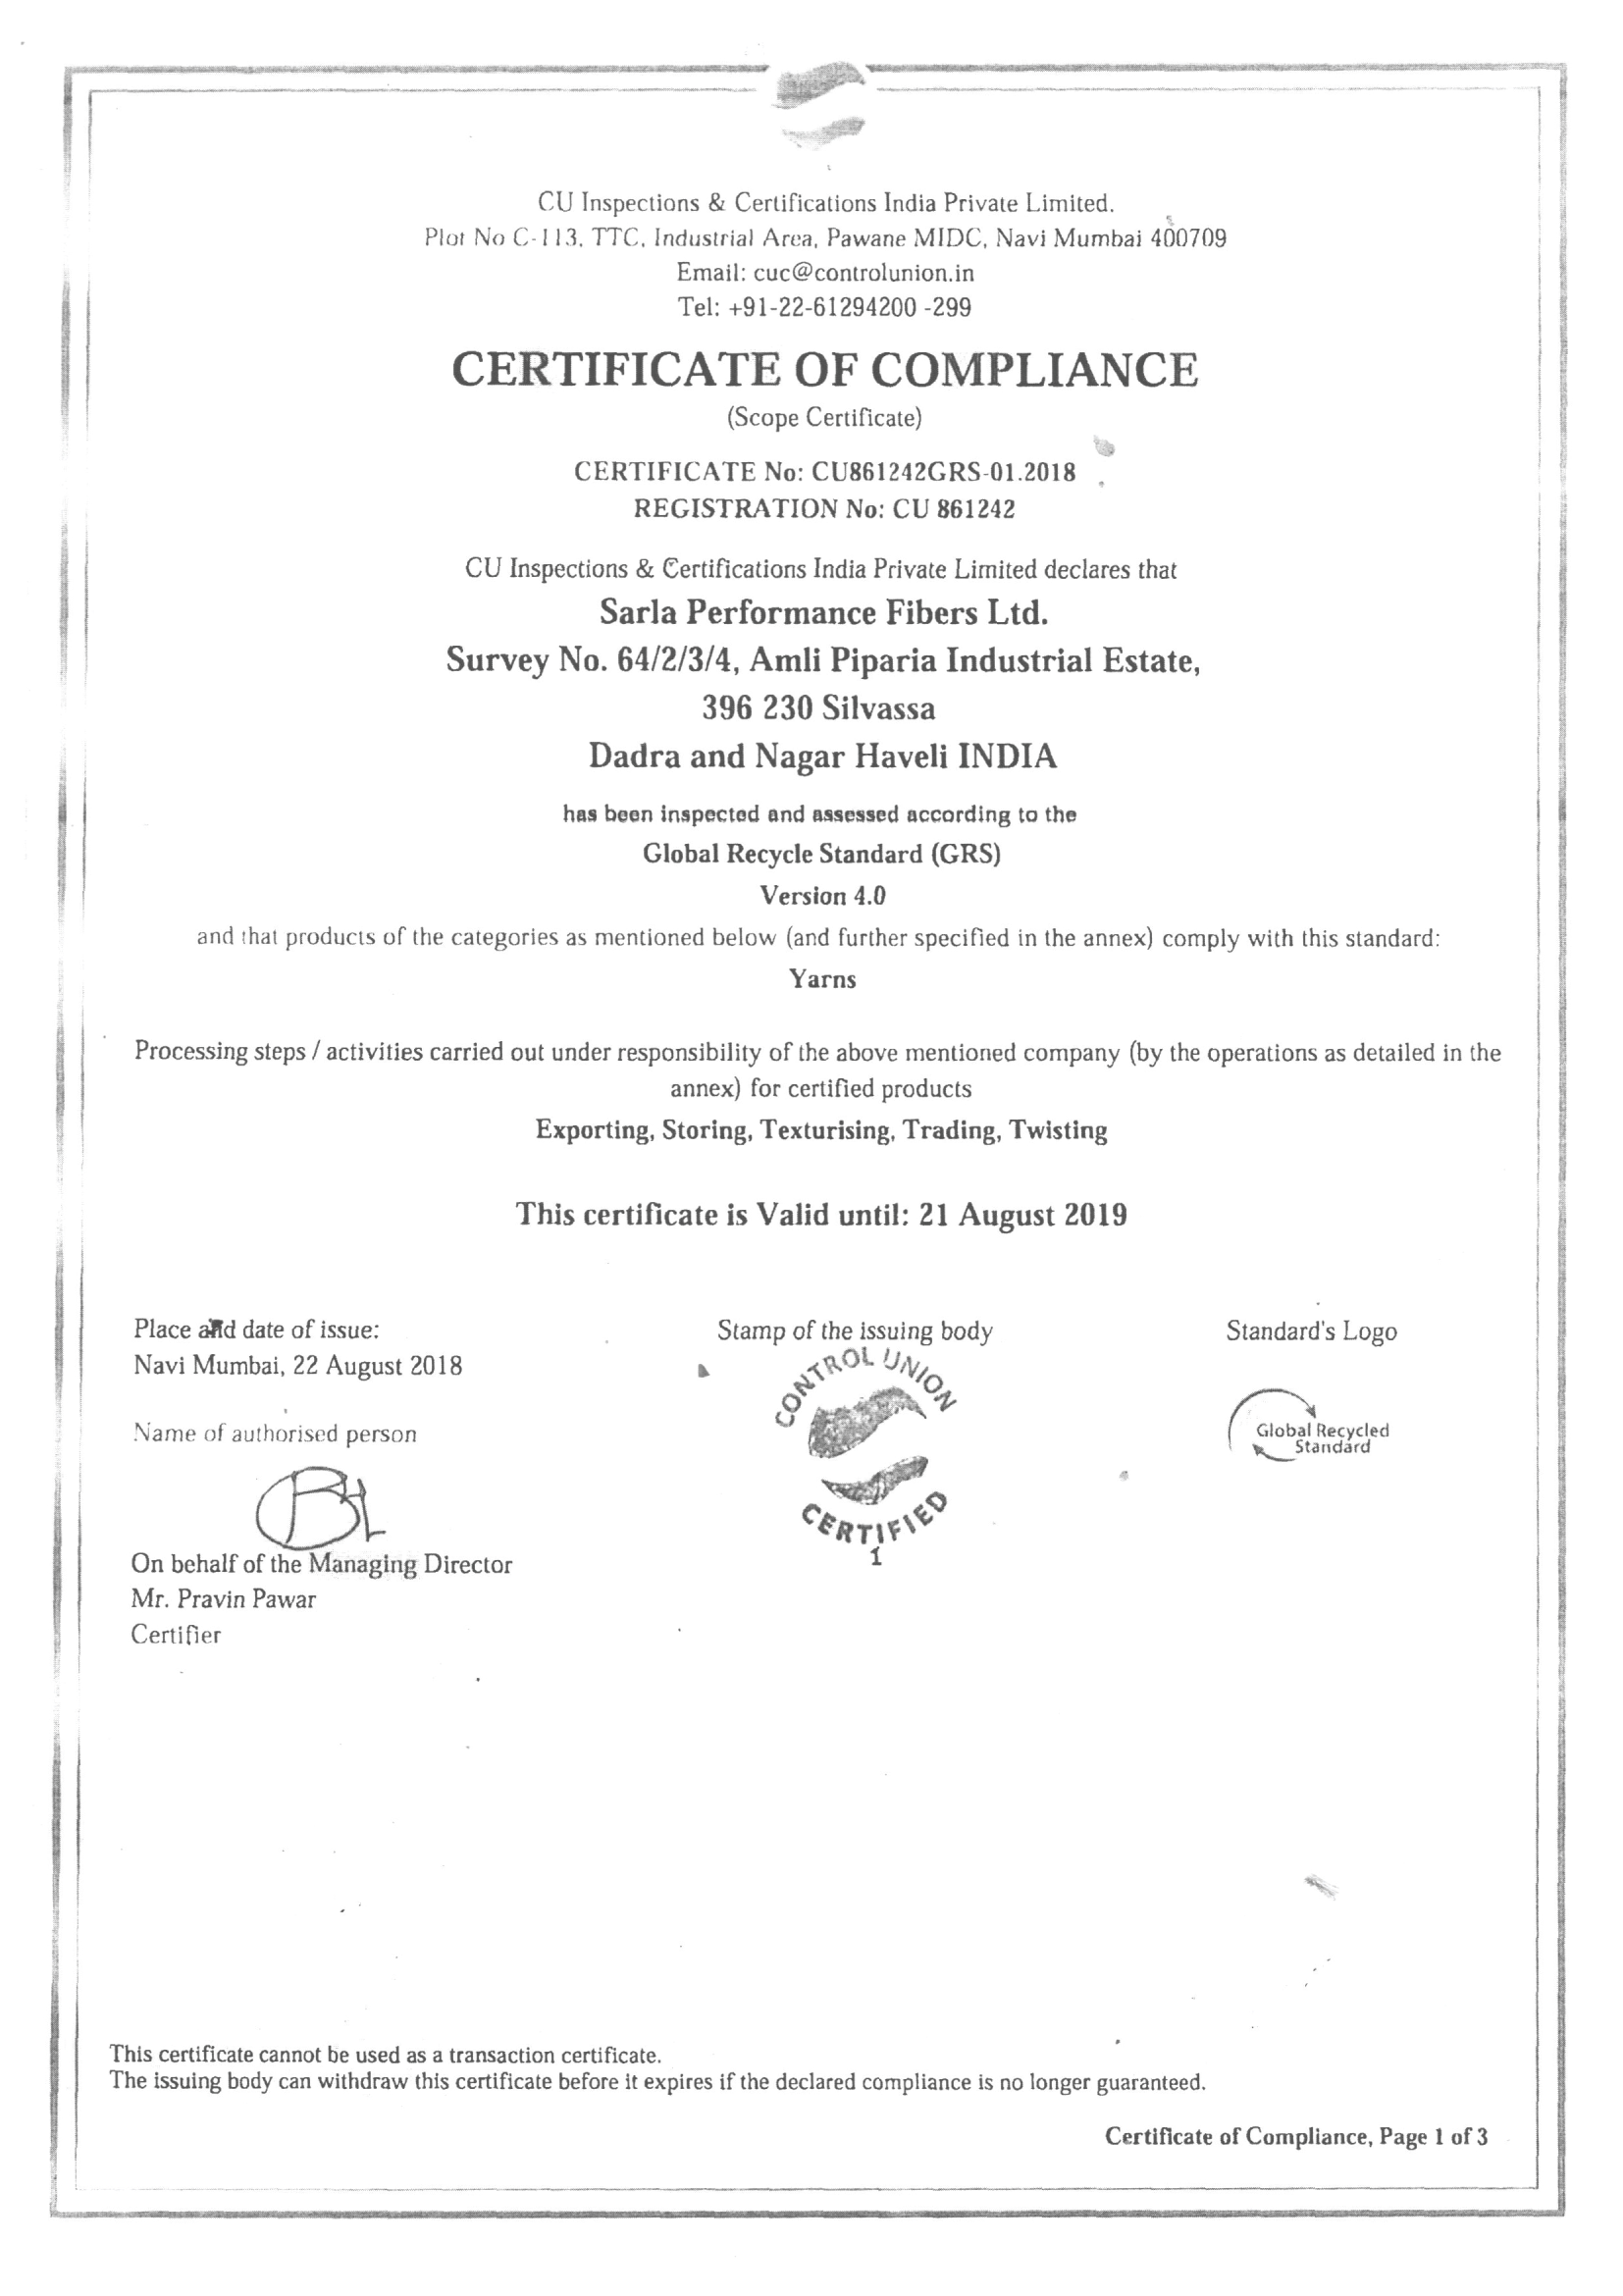 Global Recycle Standard (GRS) Certificate